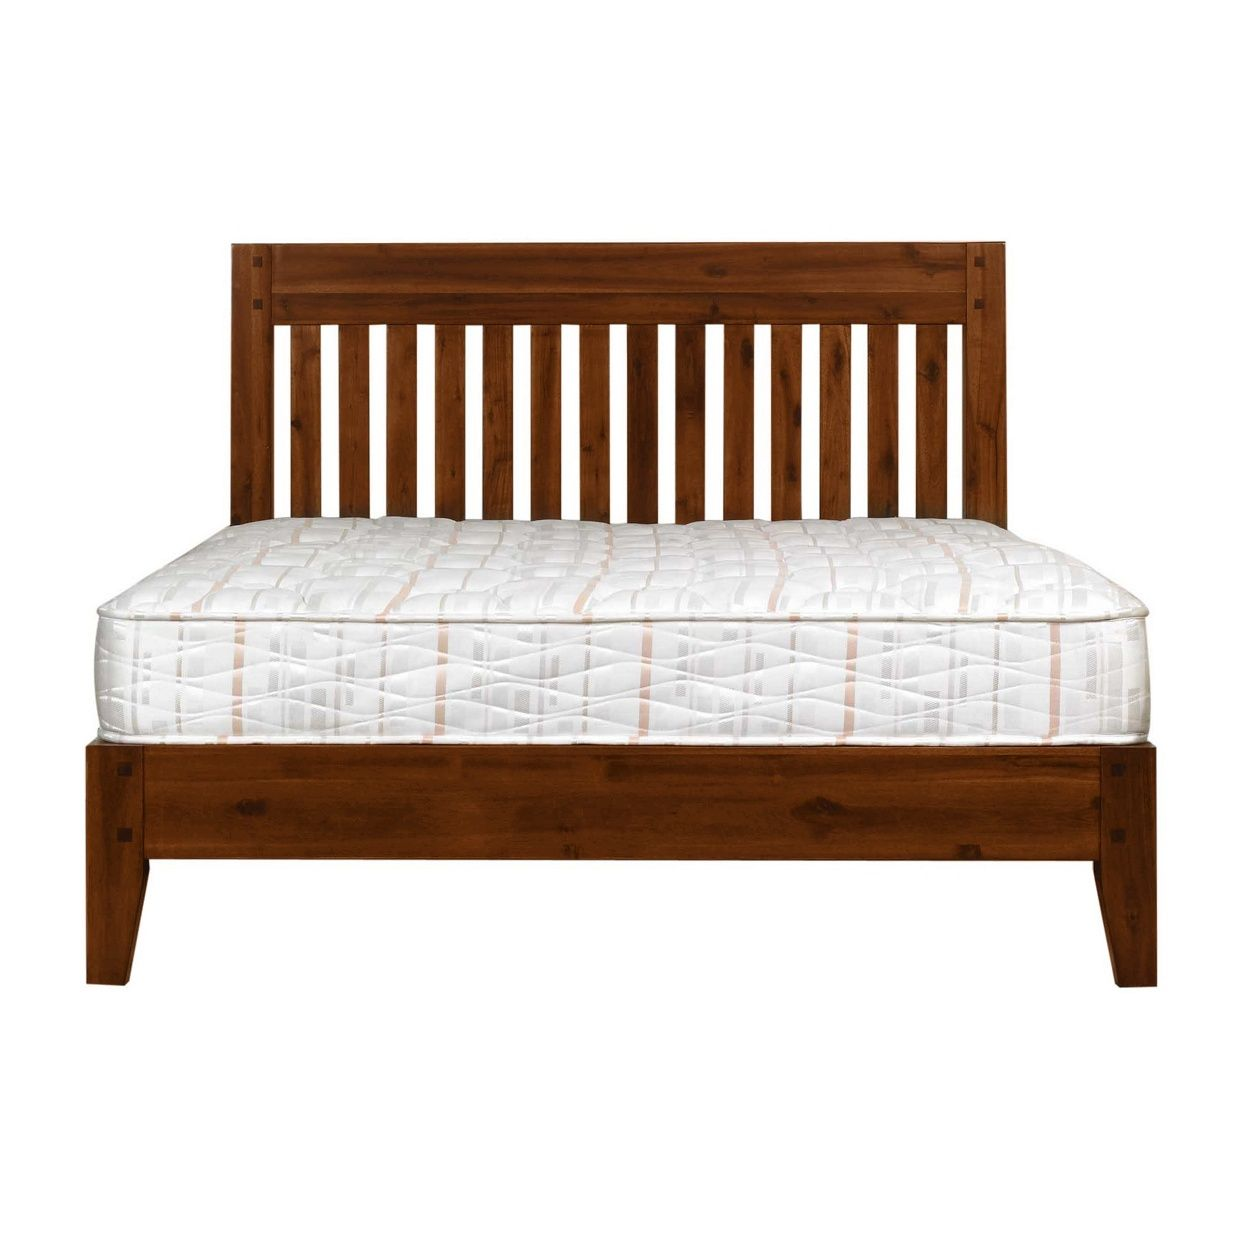 Boasting a classic slatted design, this rich dark acacia 'Elba' wooden bed is a sophisticated addition to any bedroom, and will perfectly complement lighter coloured bedding.